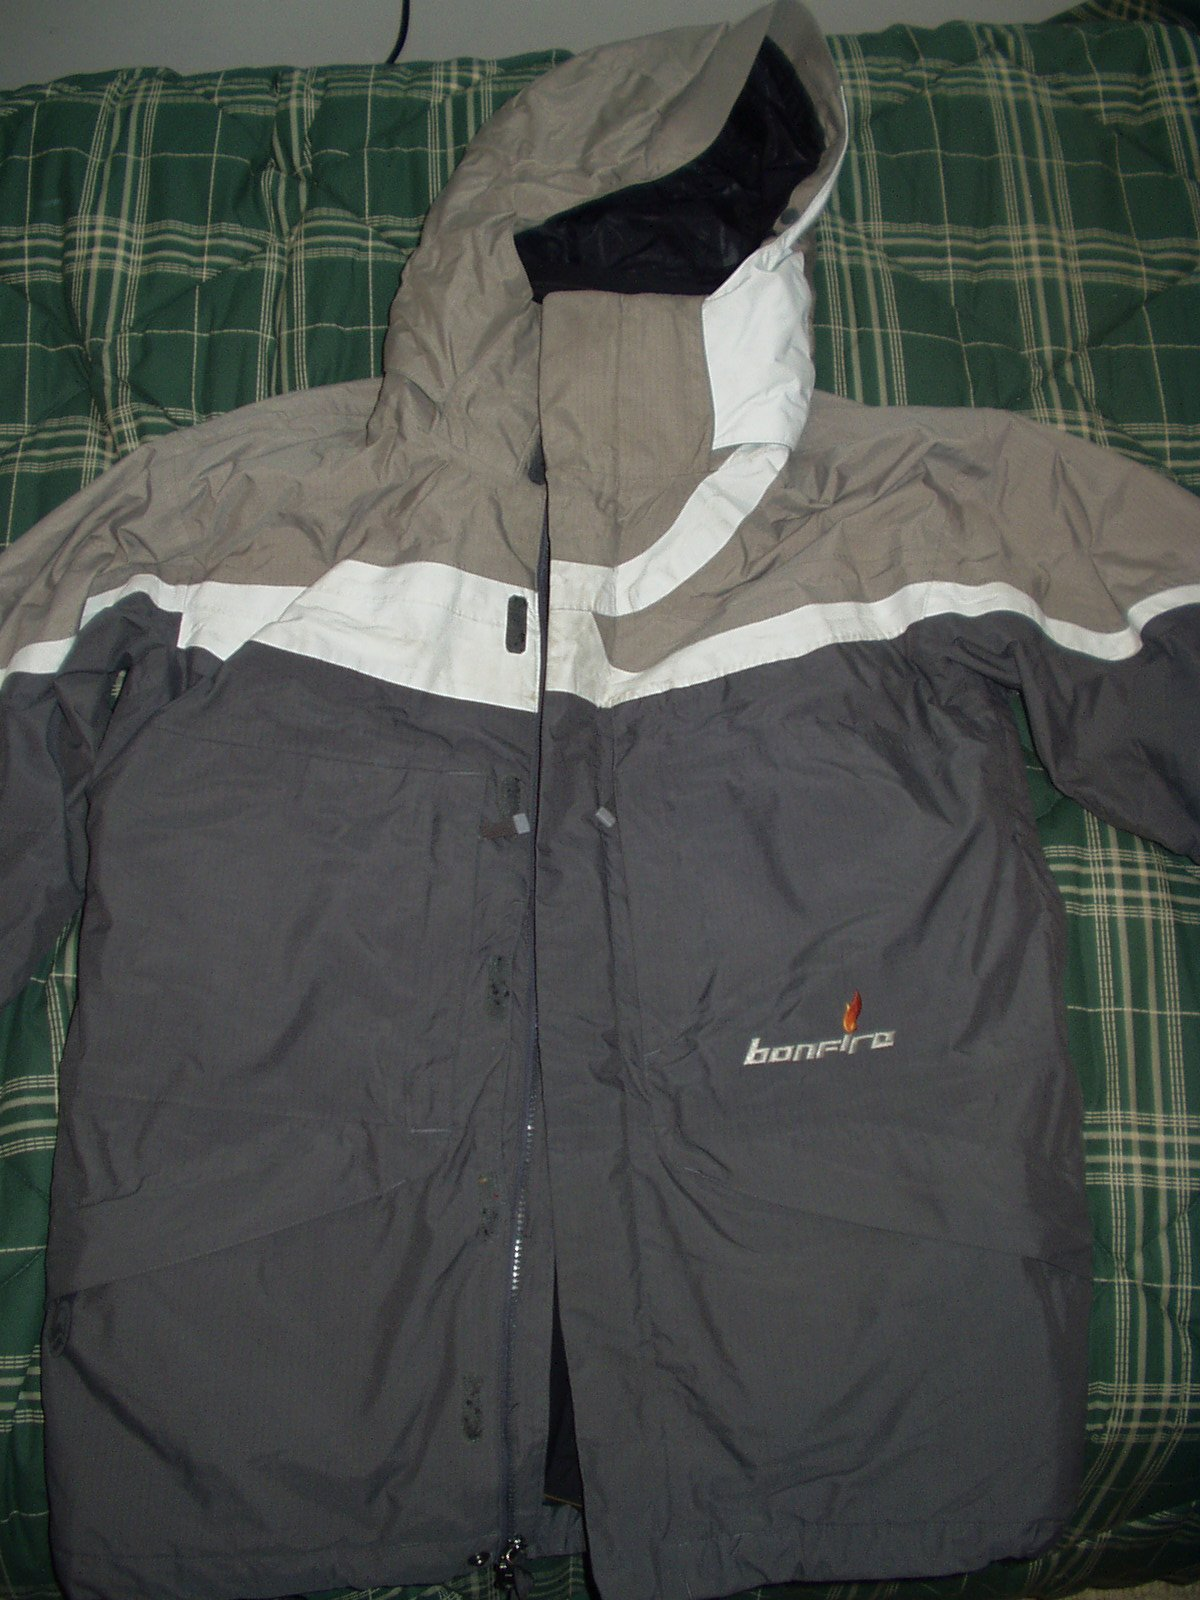 Outerwear - 14 of 16